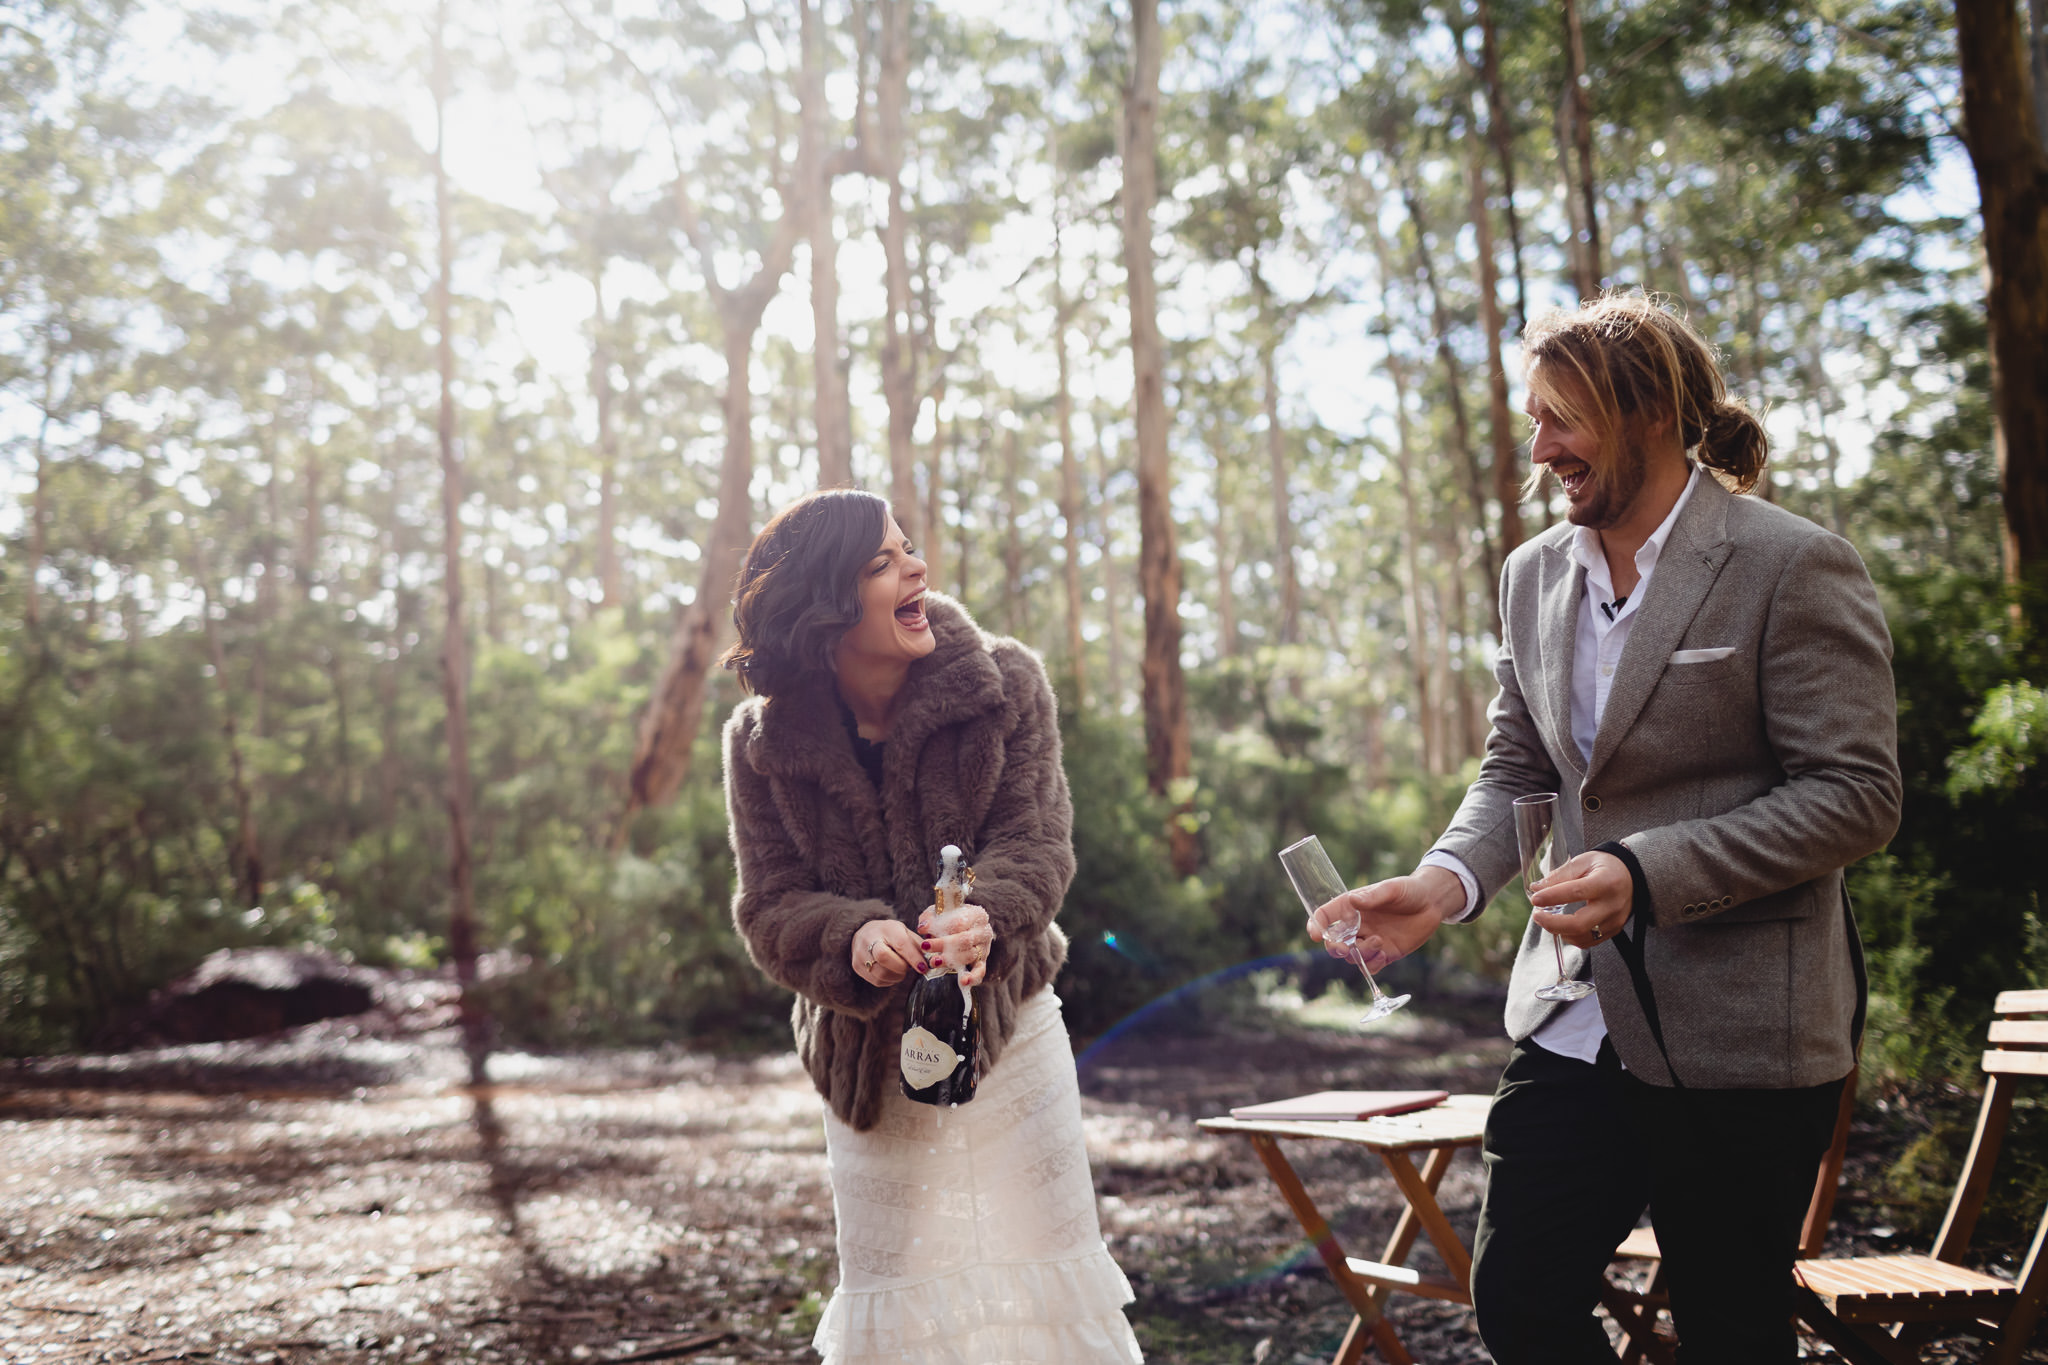 Bride with vintage fur coat laughing with groom while opening a bottle of champagne in Boranup forest at their winter wedding